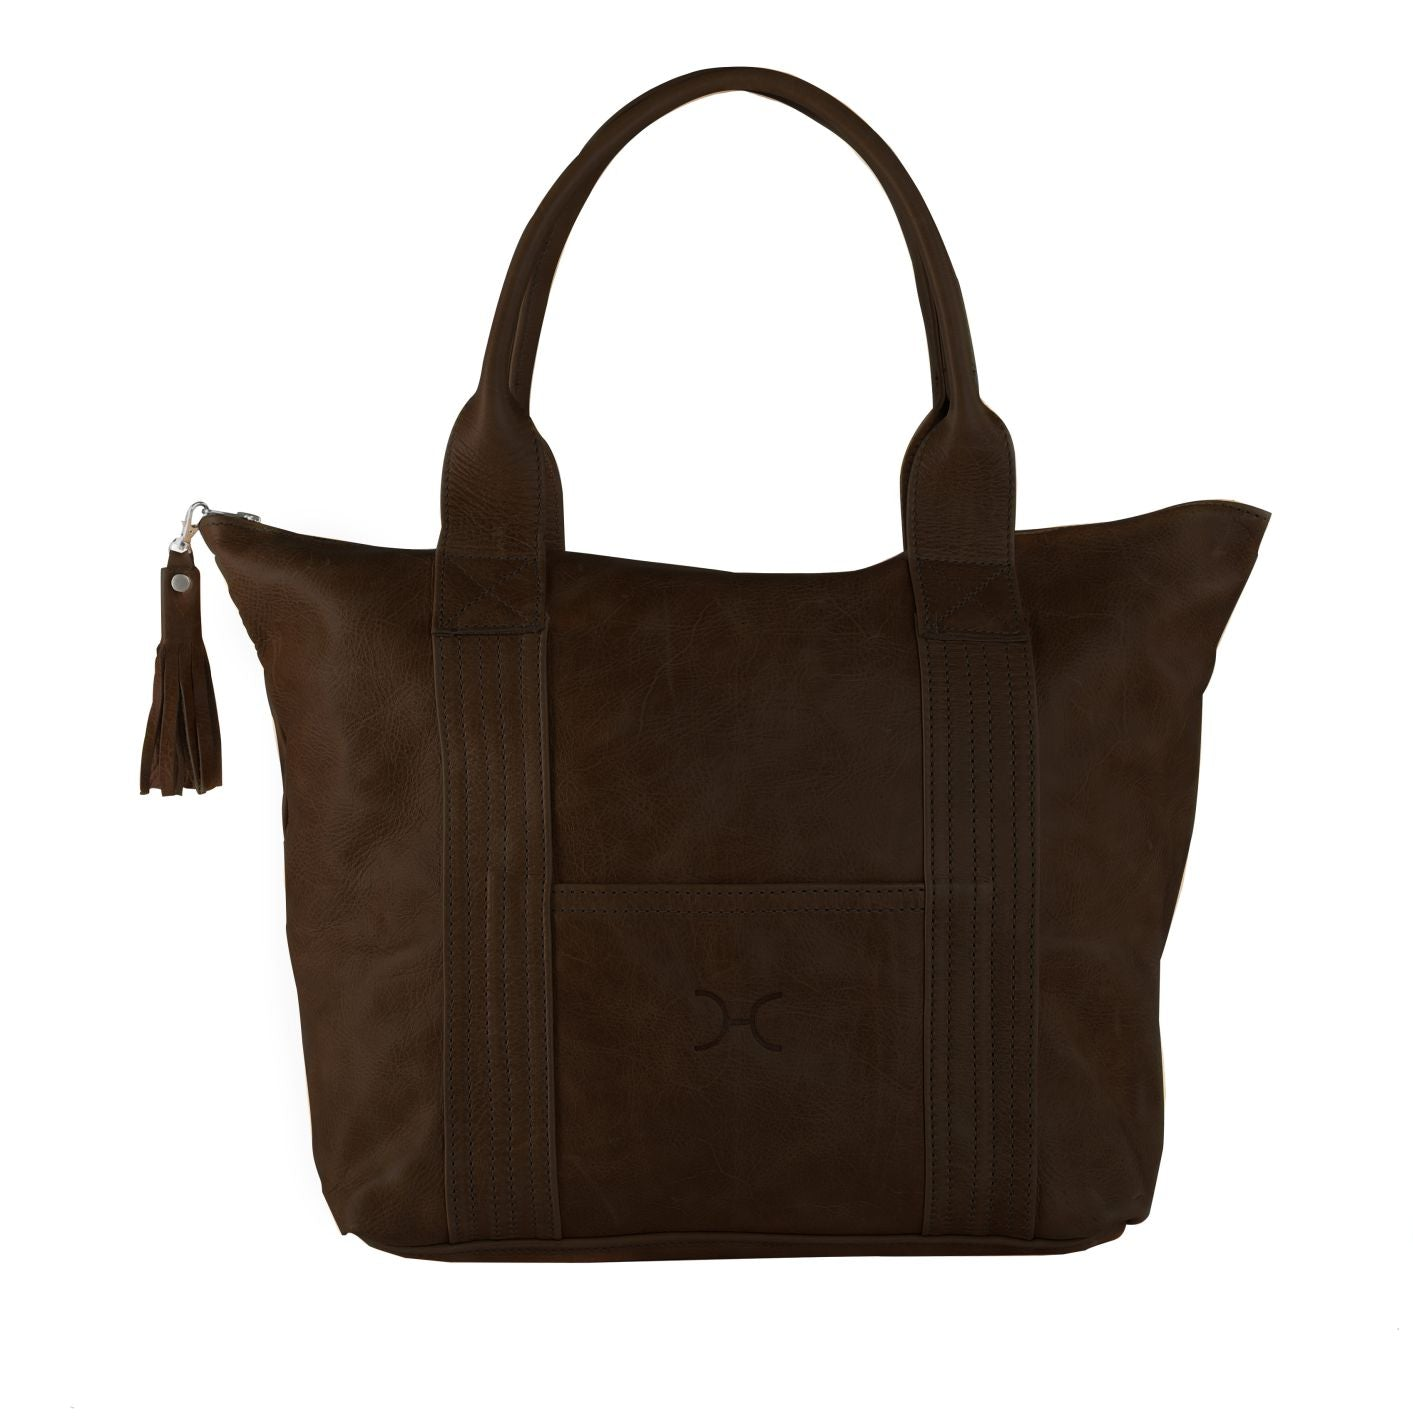 Thandana Dan Dan Bag - Brown - Zufrique Boutique